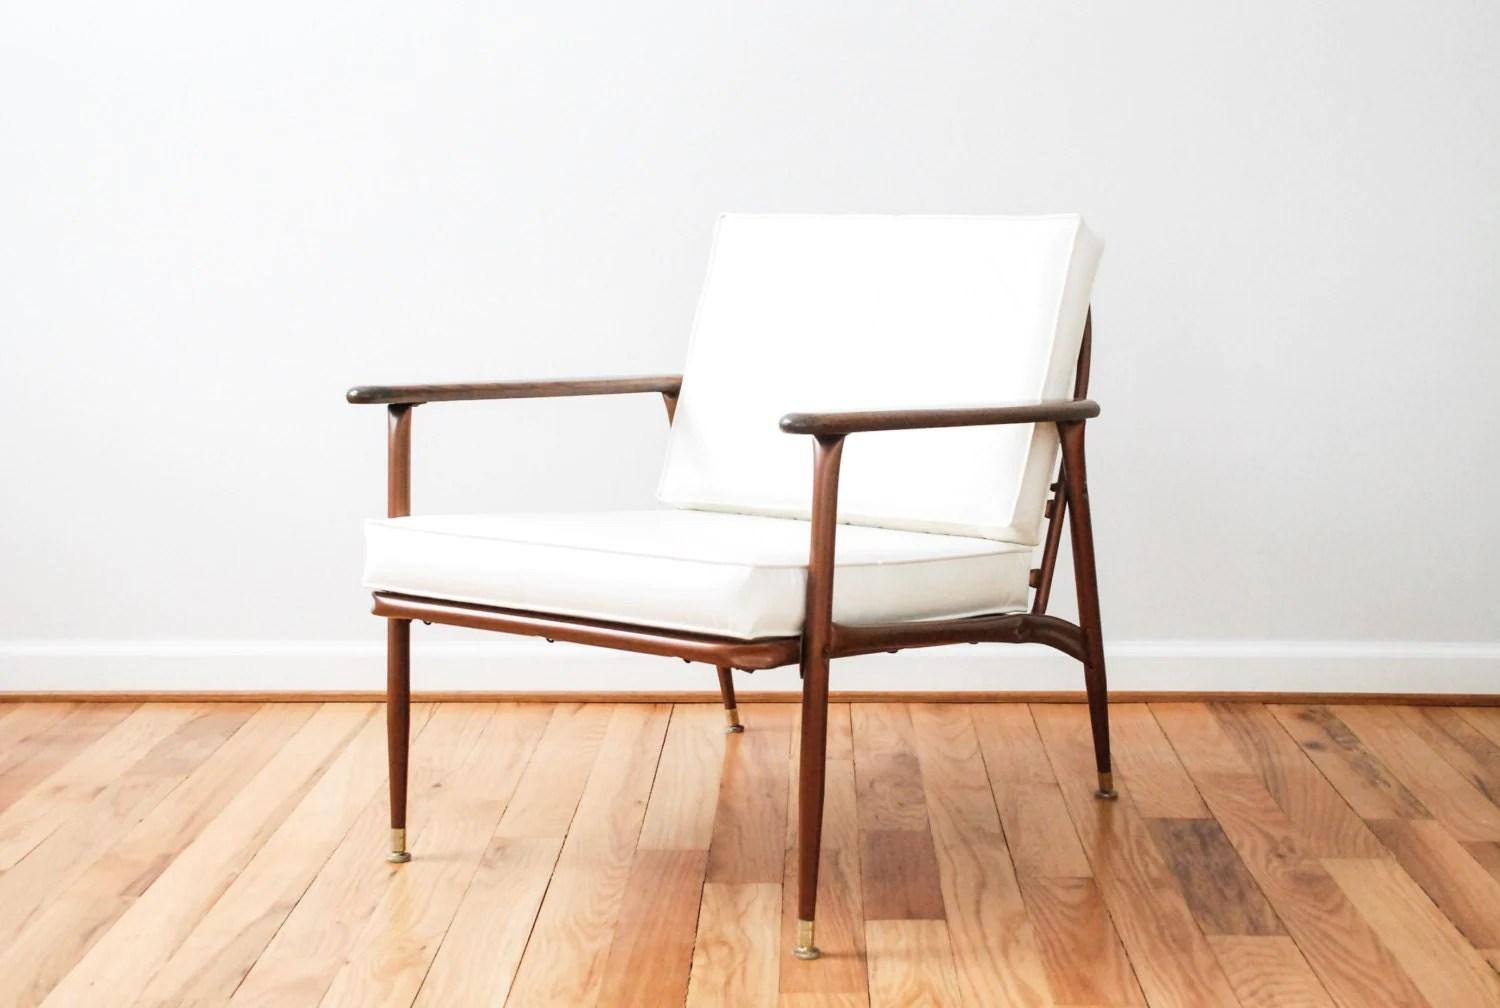 Mid Century Danish Chair Mid Century Chair Danish Chair Mid Century Lounge Chair